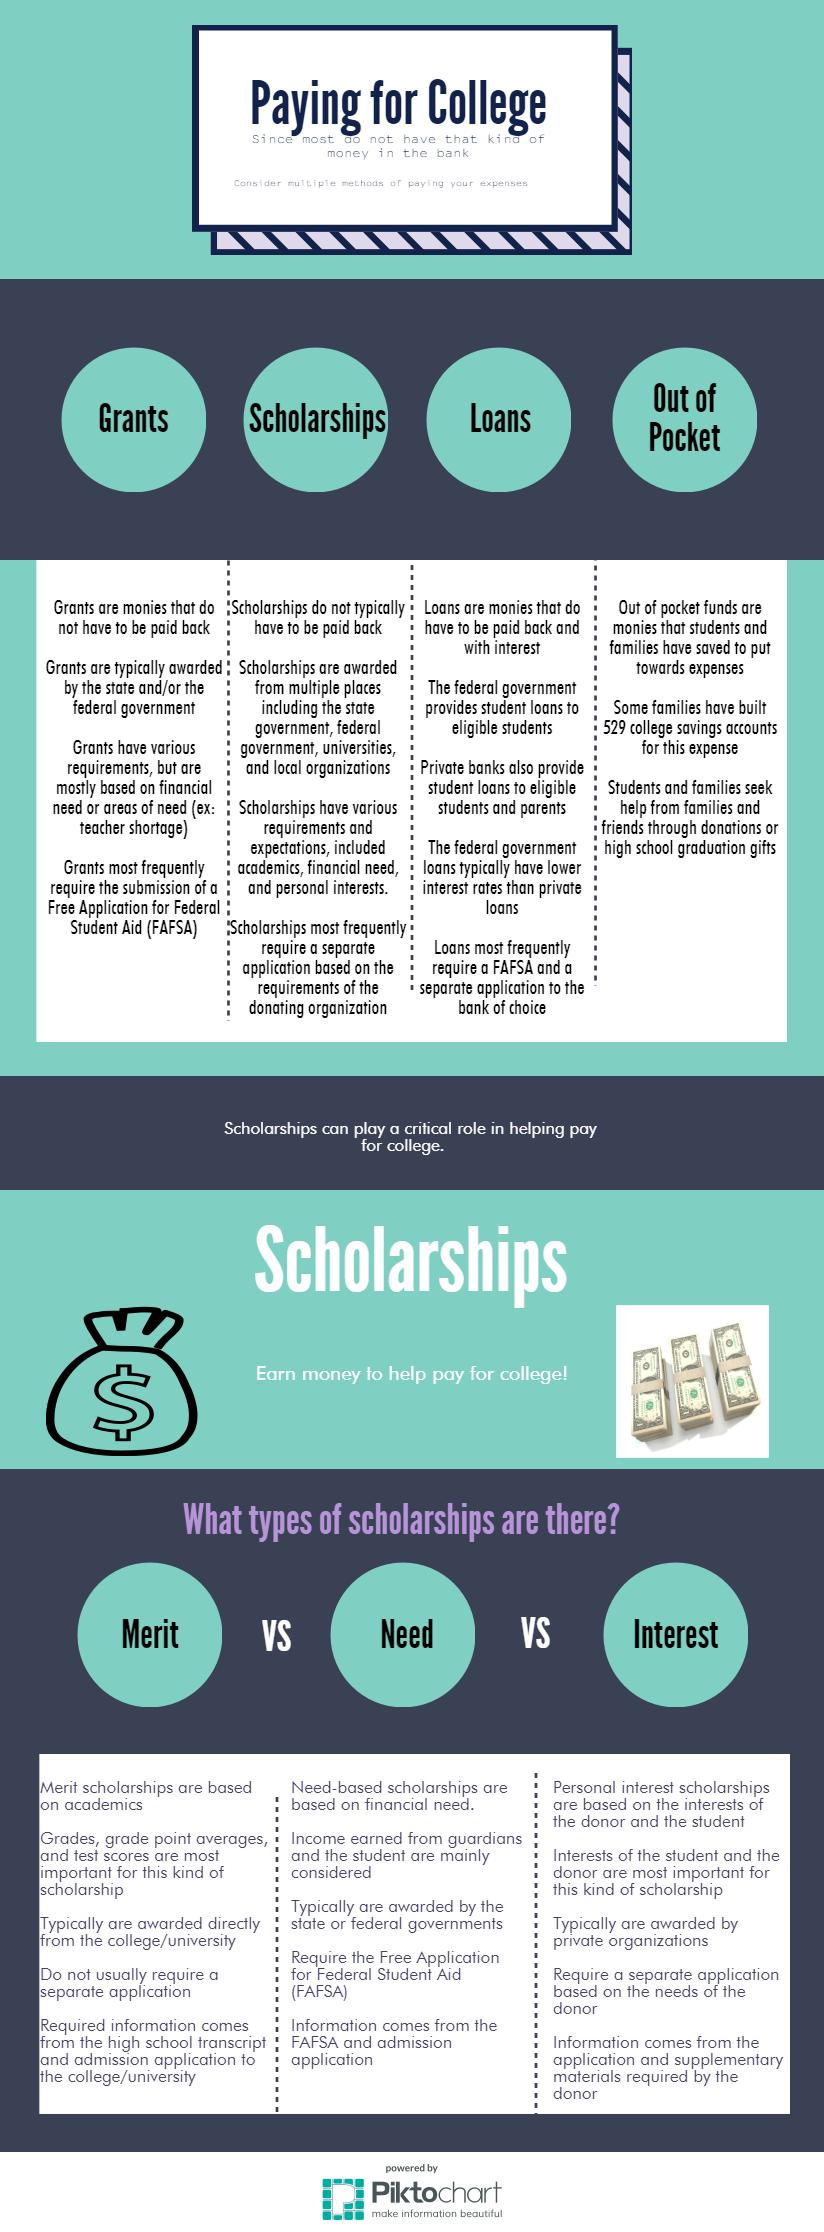 Paying for College Piktochart